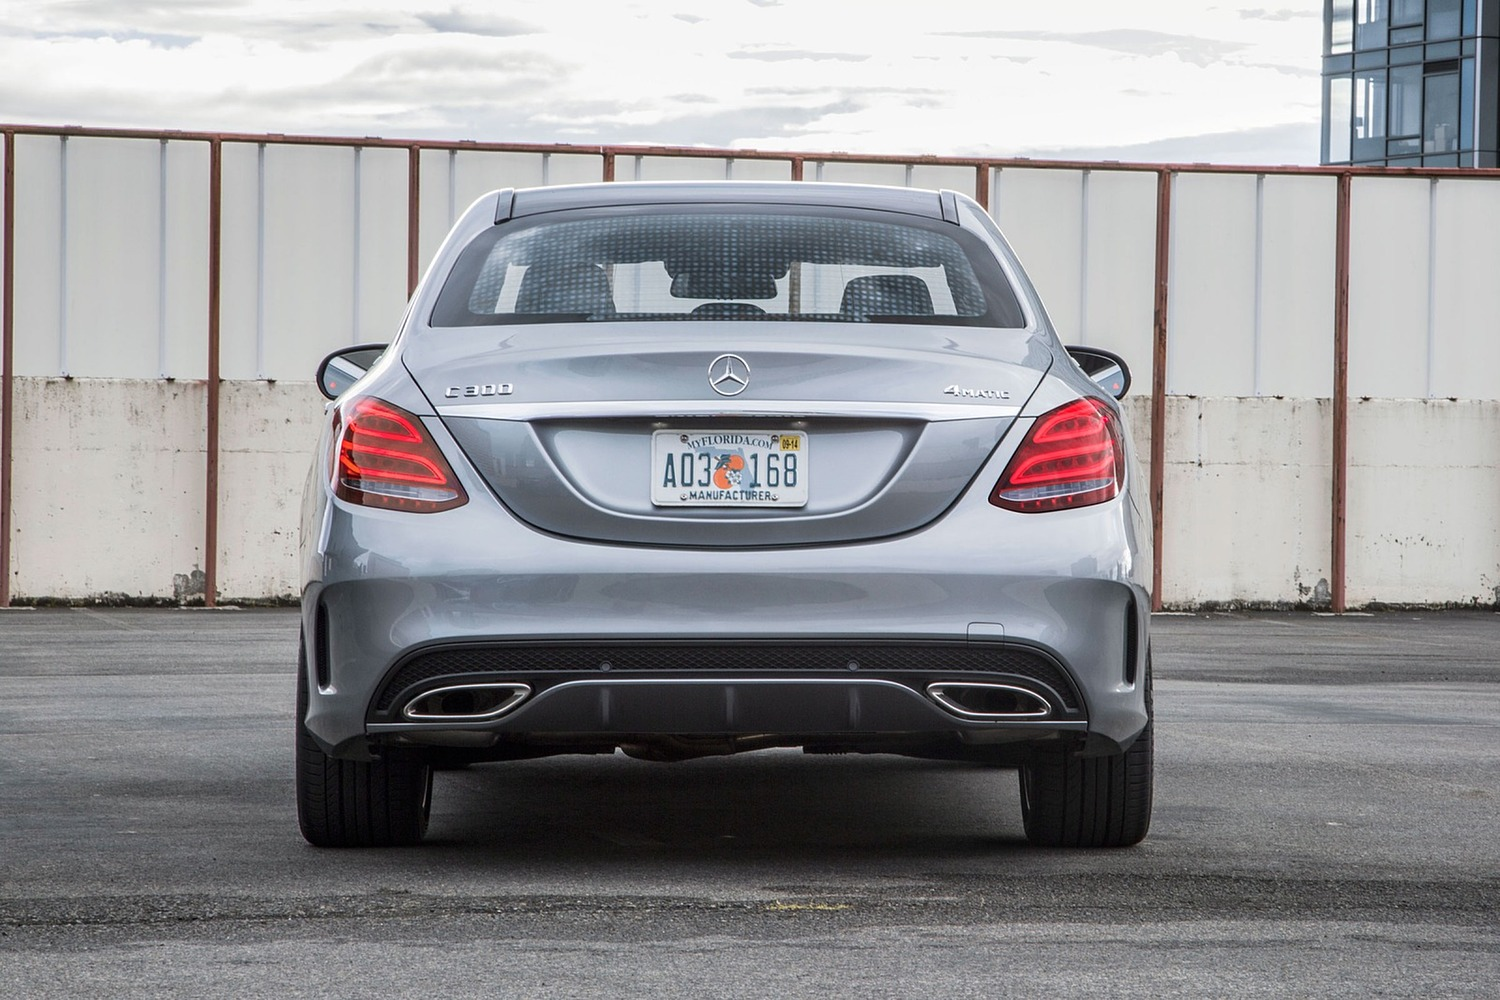 2018 Mercedes-Benz C-Class C 300 4MATIC Sedan Exterior